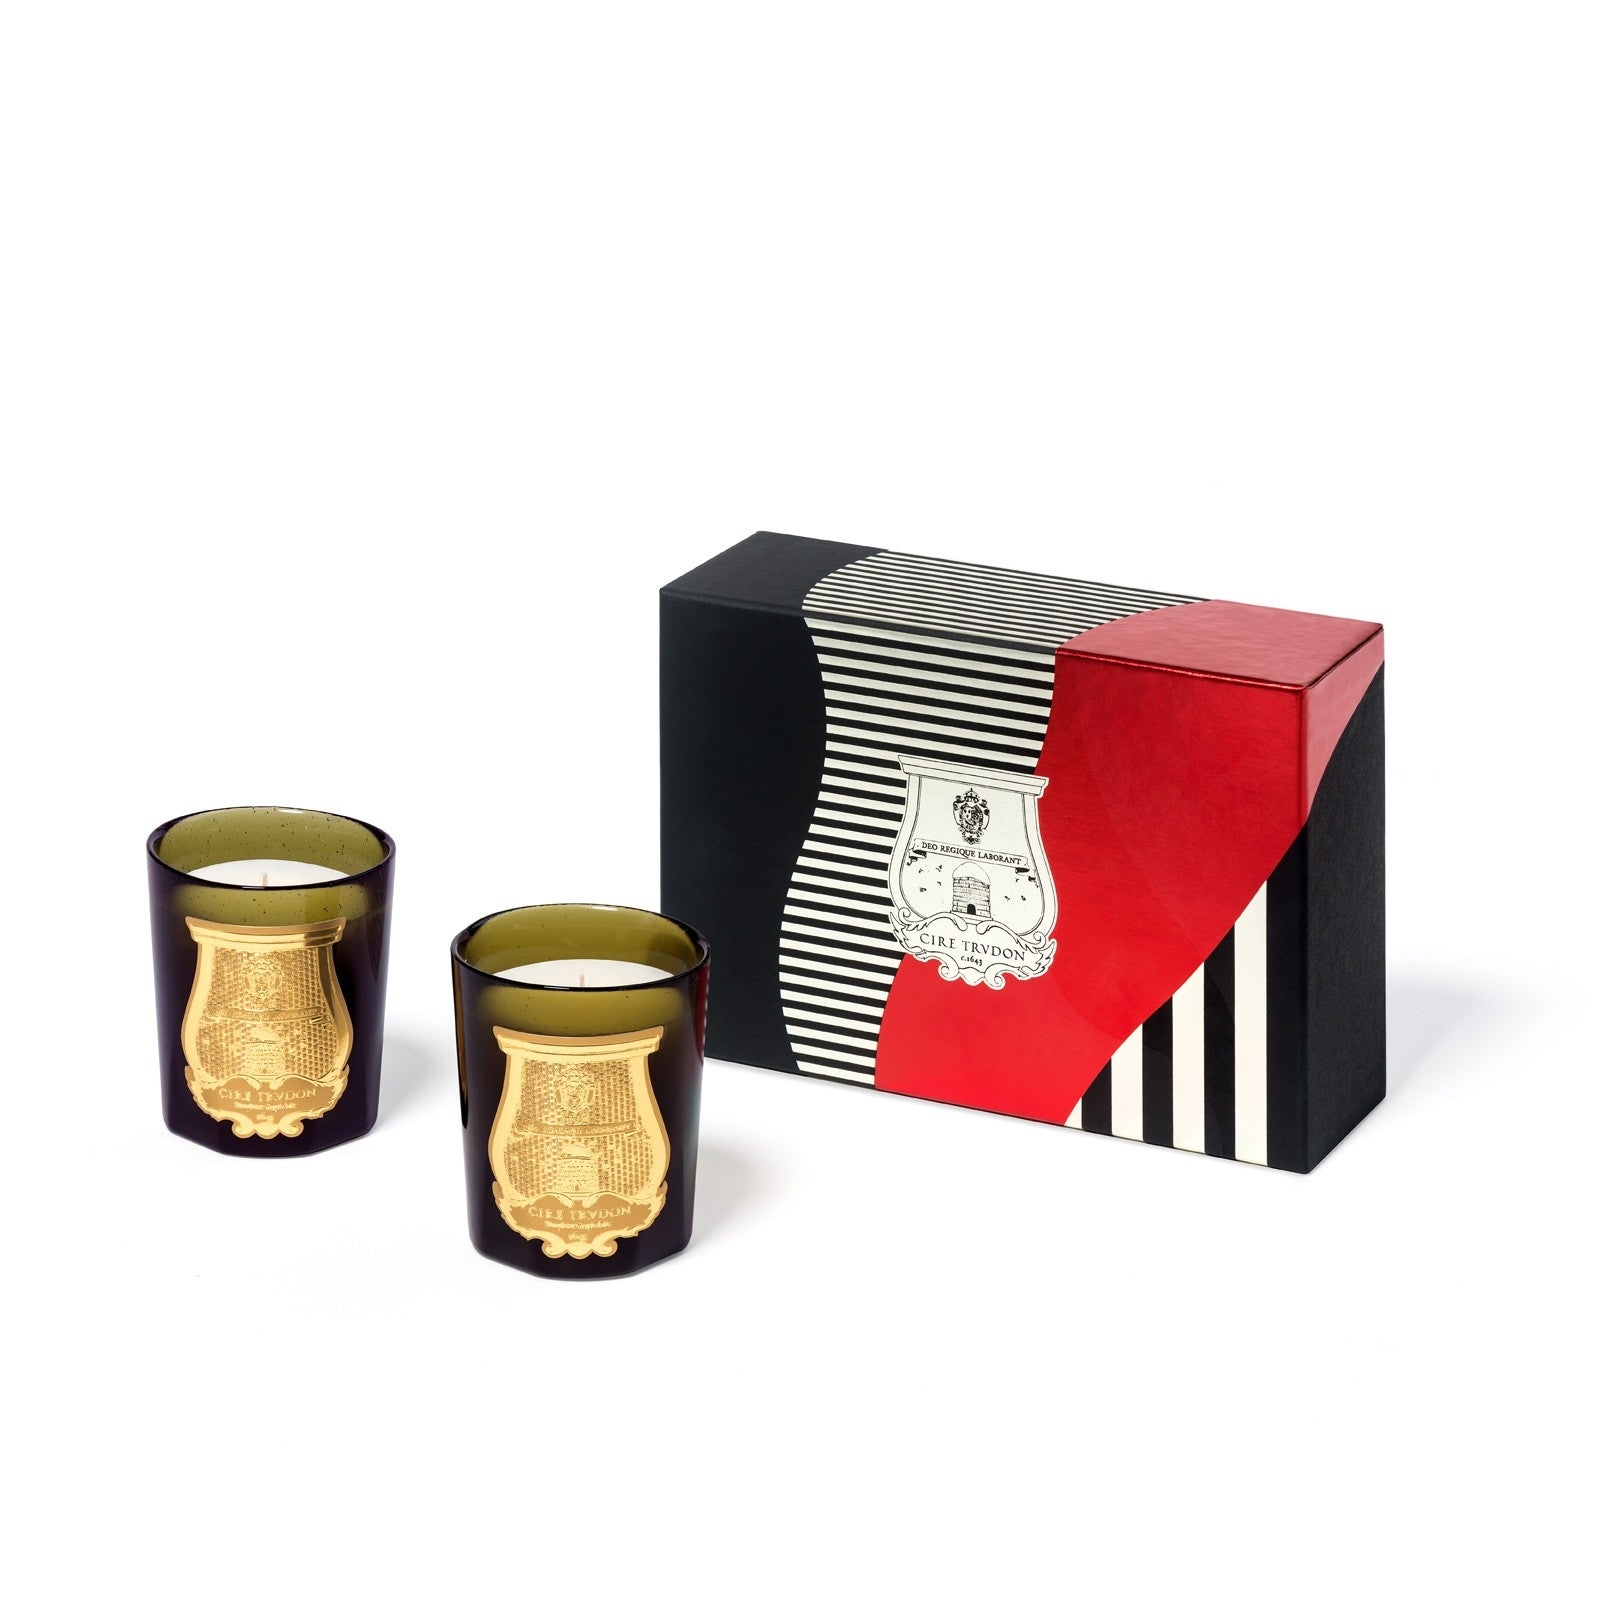 Cire Trudon Duet Candle Revolutionary Gift Set